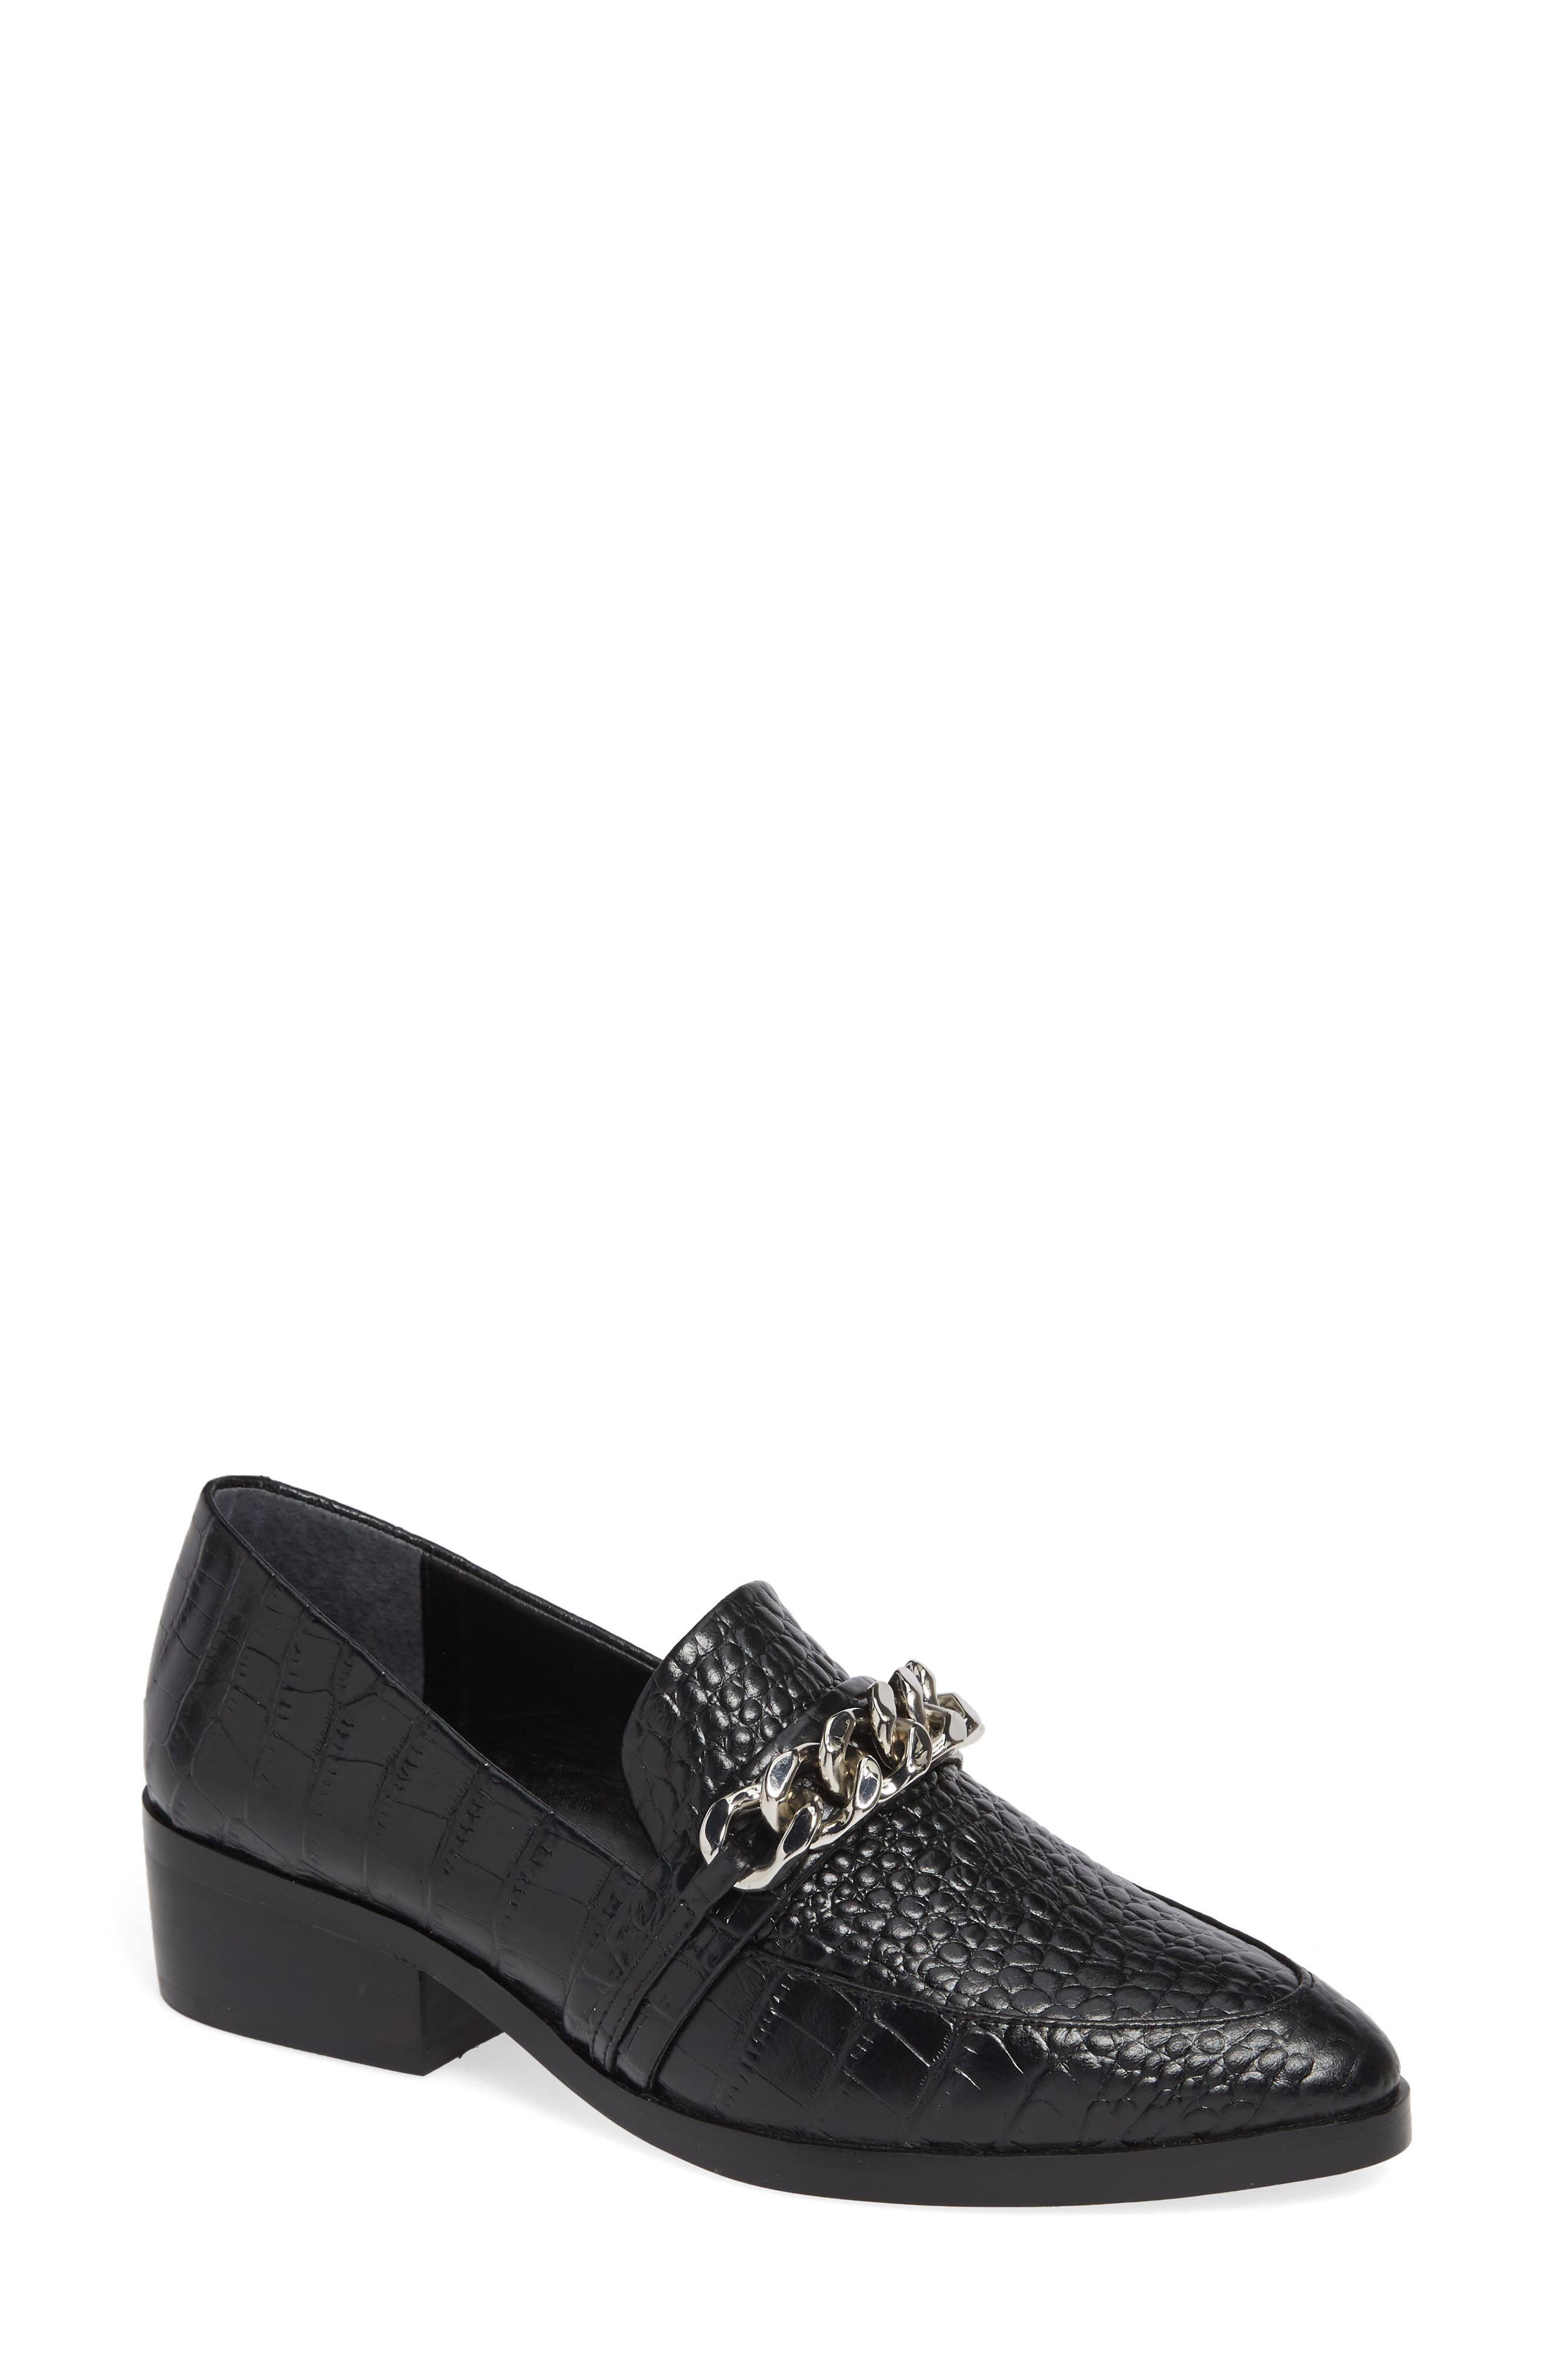 Molly Loafer,                             Main thumbnail 1, color,                             BLACK CROC LEATHER